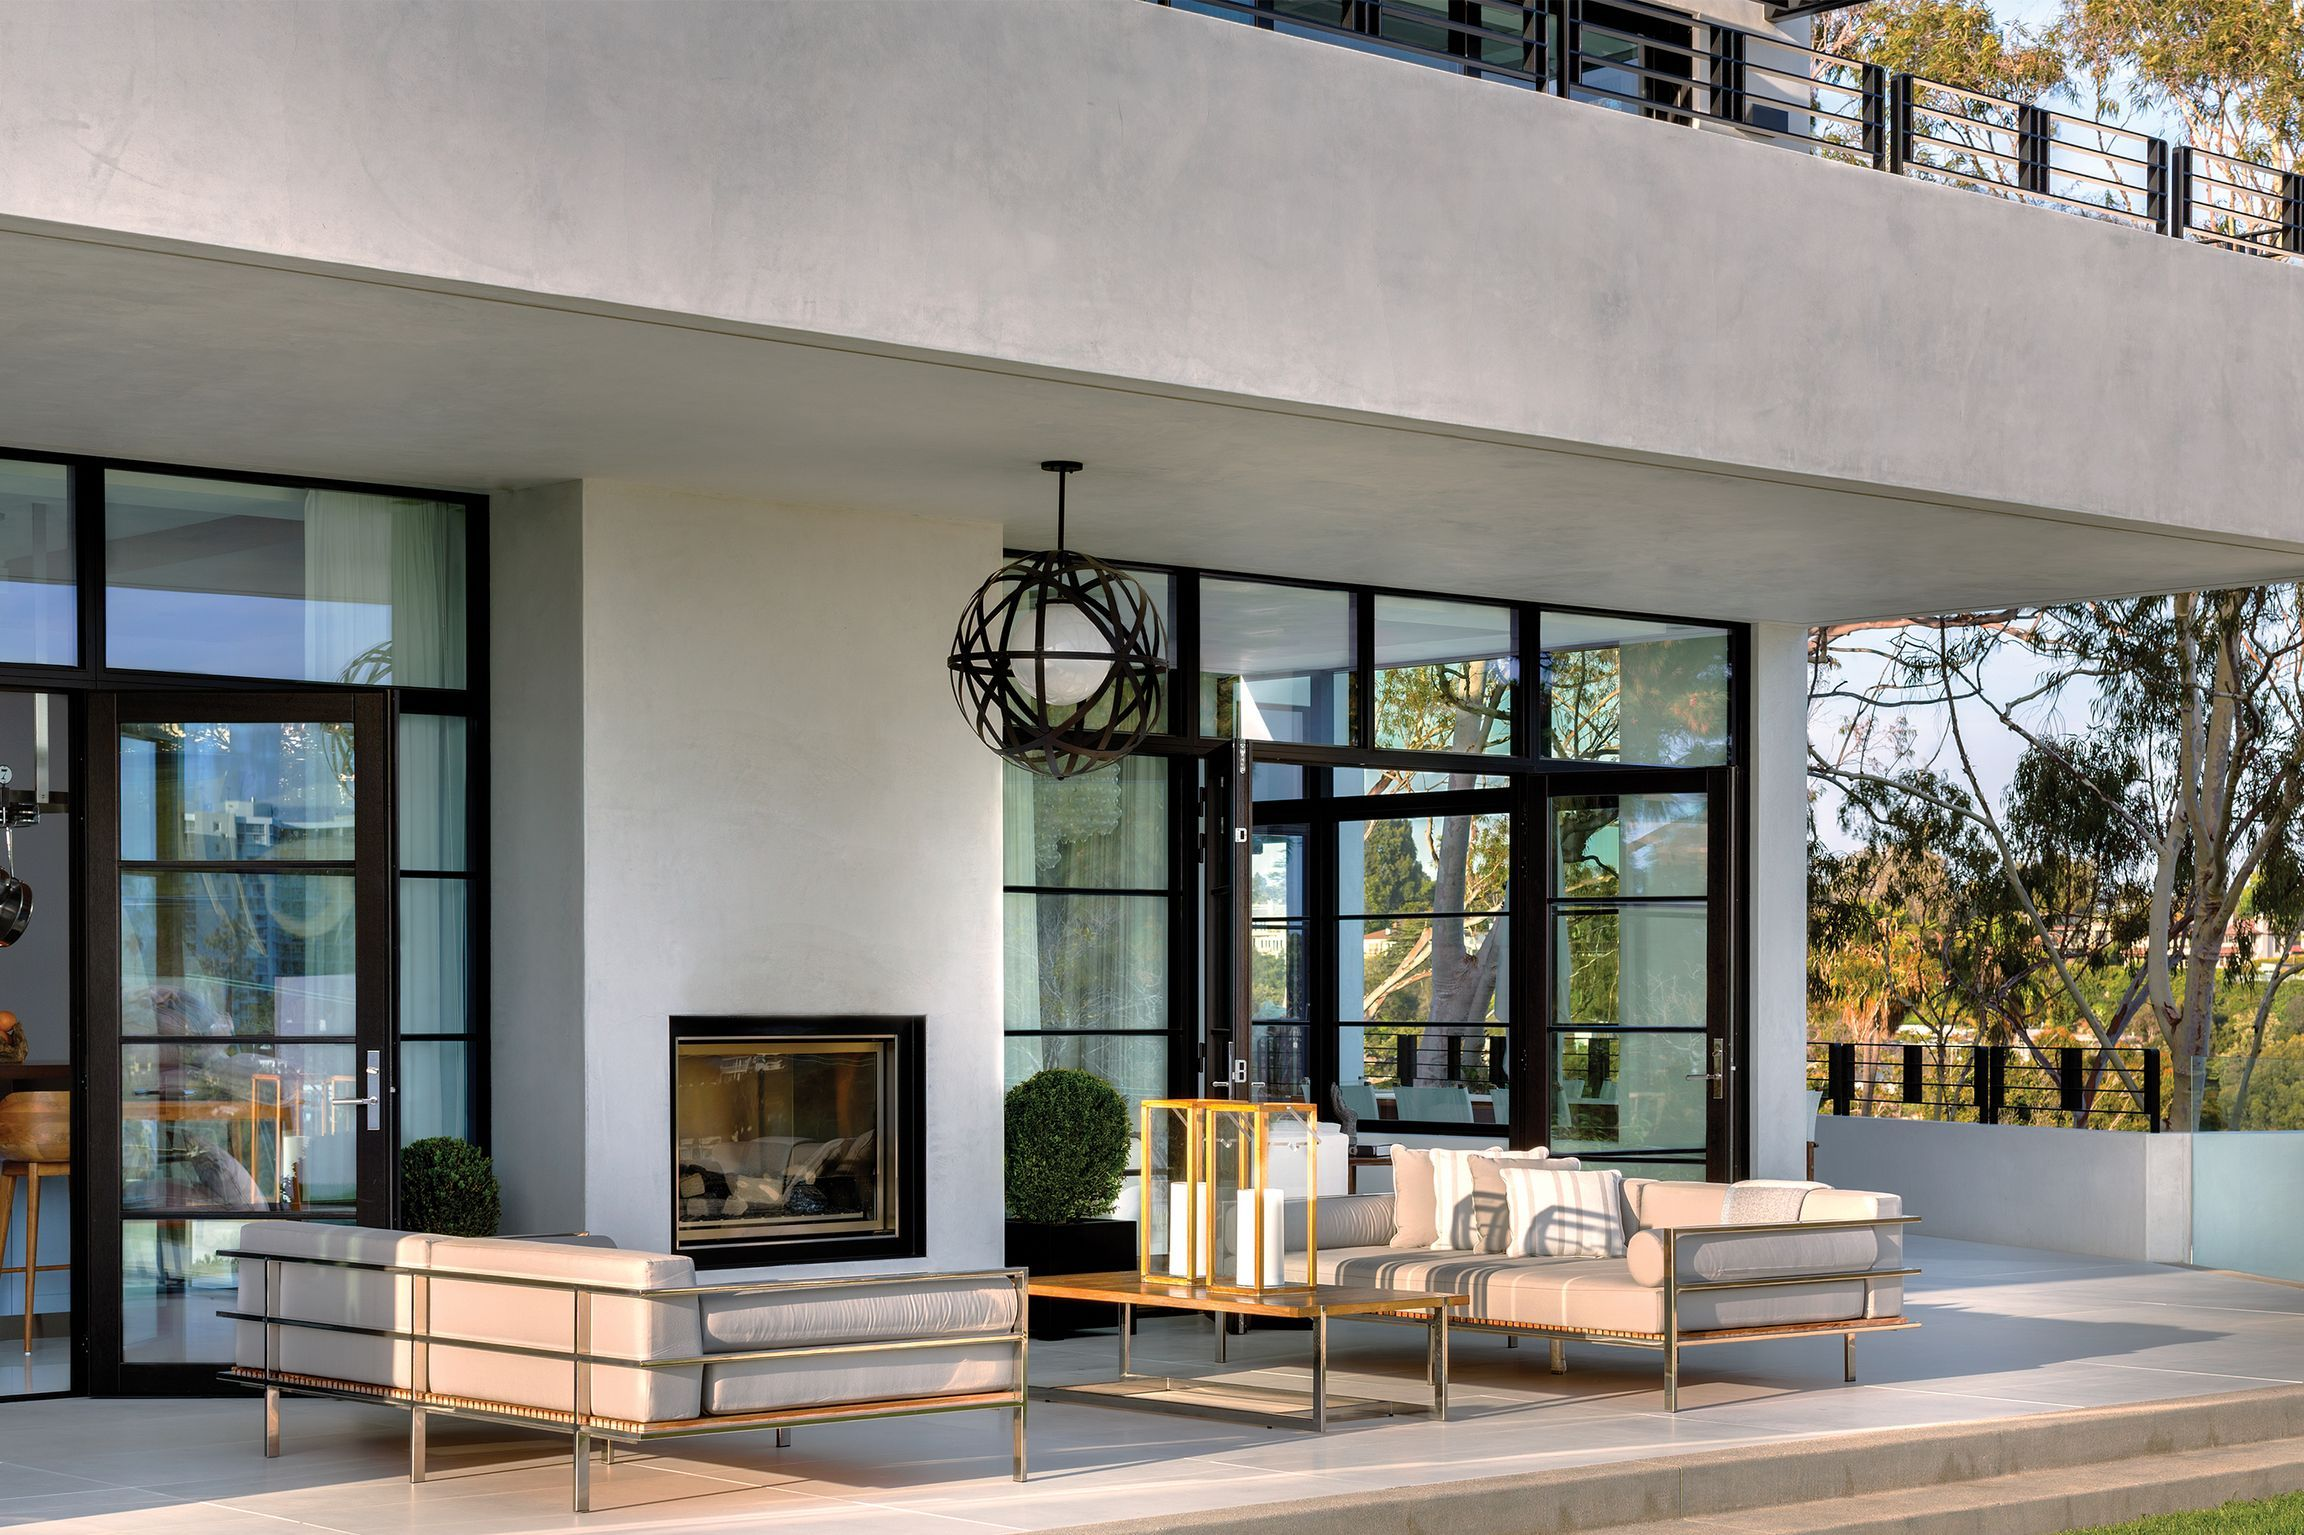 The Chicest Outdoor Fireplace Ideas to Steal for Your Backyard